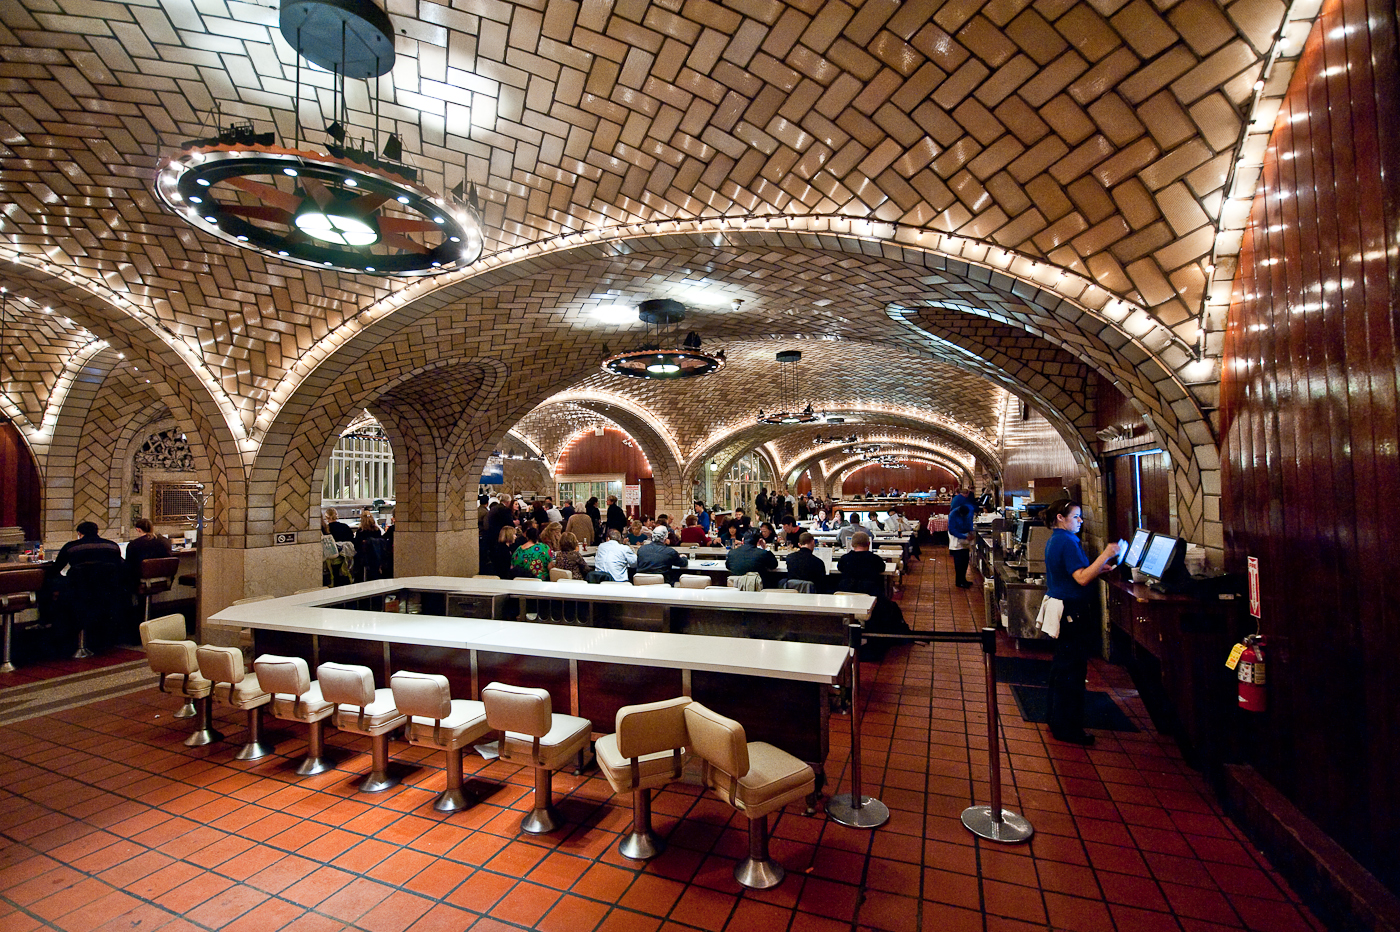 The Grand Central Oyster Bar Restaurant